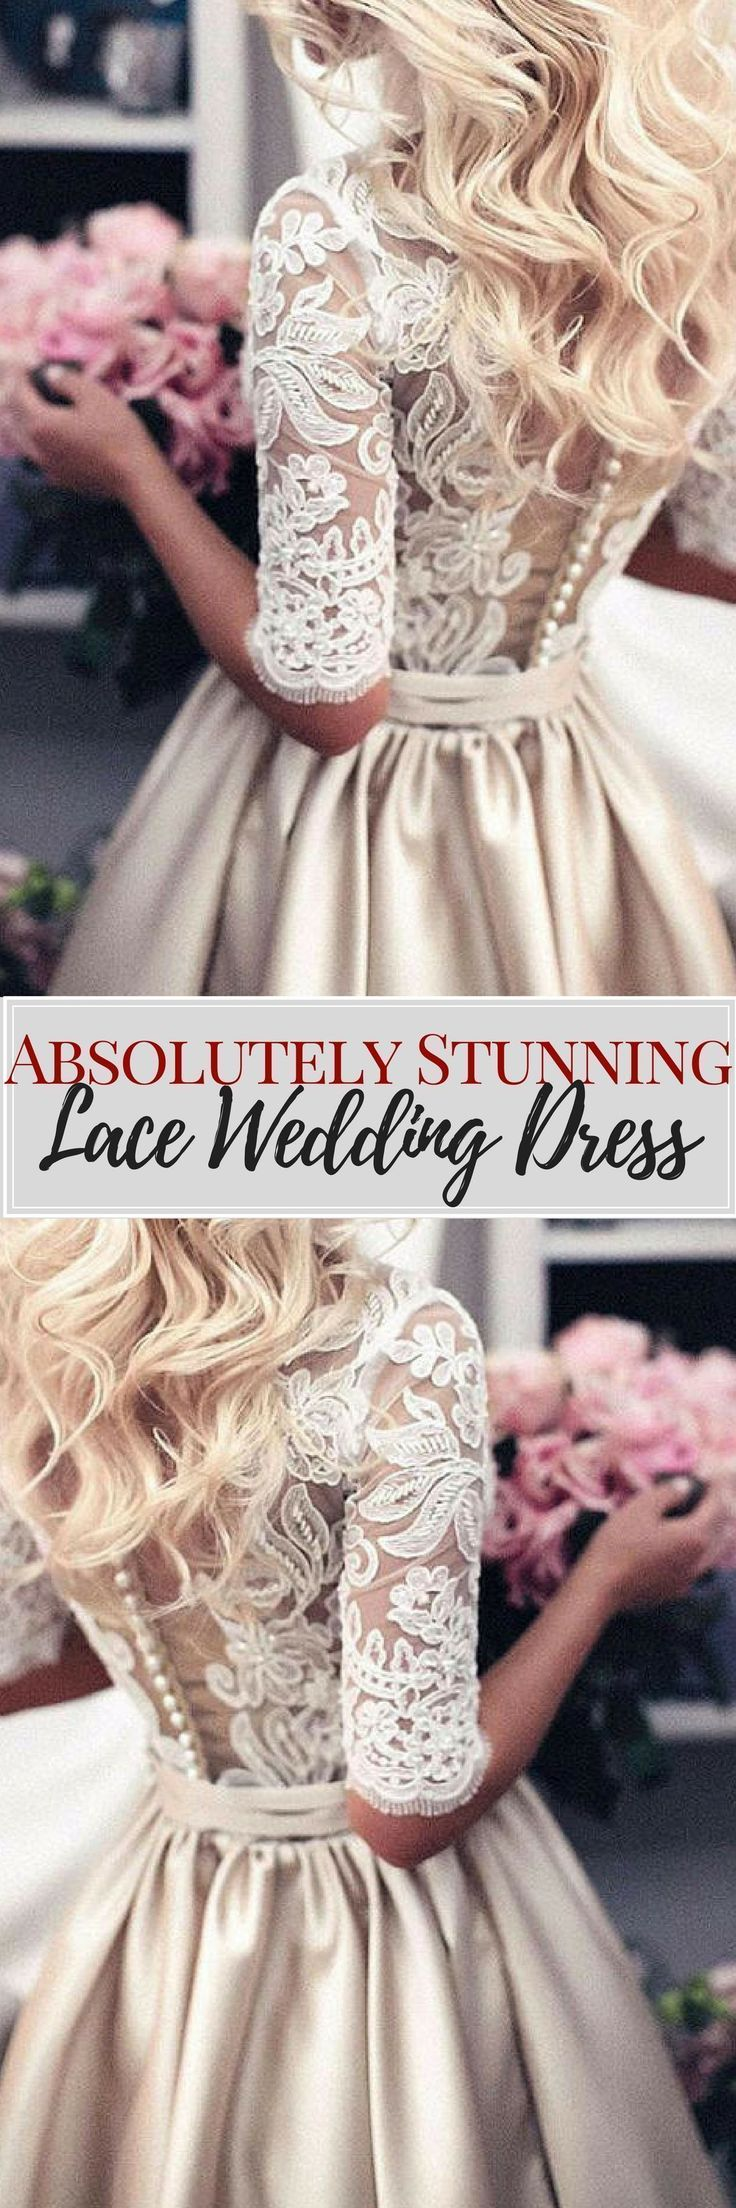 I am absolutely IN LOVE with this dress. The fit is flawless and the  quality is far superior to all other dresses. If you are on the fence  about purchasing here, do it. You will not regret it!!!    Wedding dress, wedding dress lace, wedding dresses, princess wedding dresses, aline wedding dresses, sleeved wedding dresses #womensfashion #ad #weddingideas #princessweddingdresses